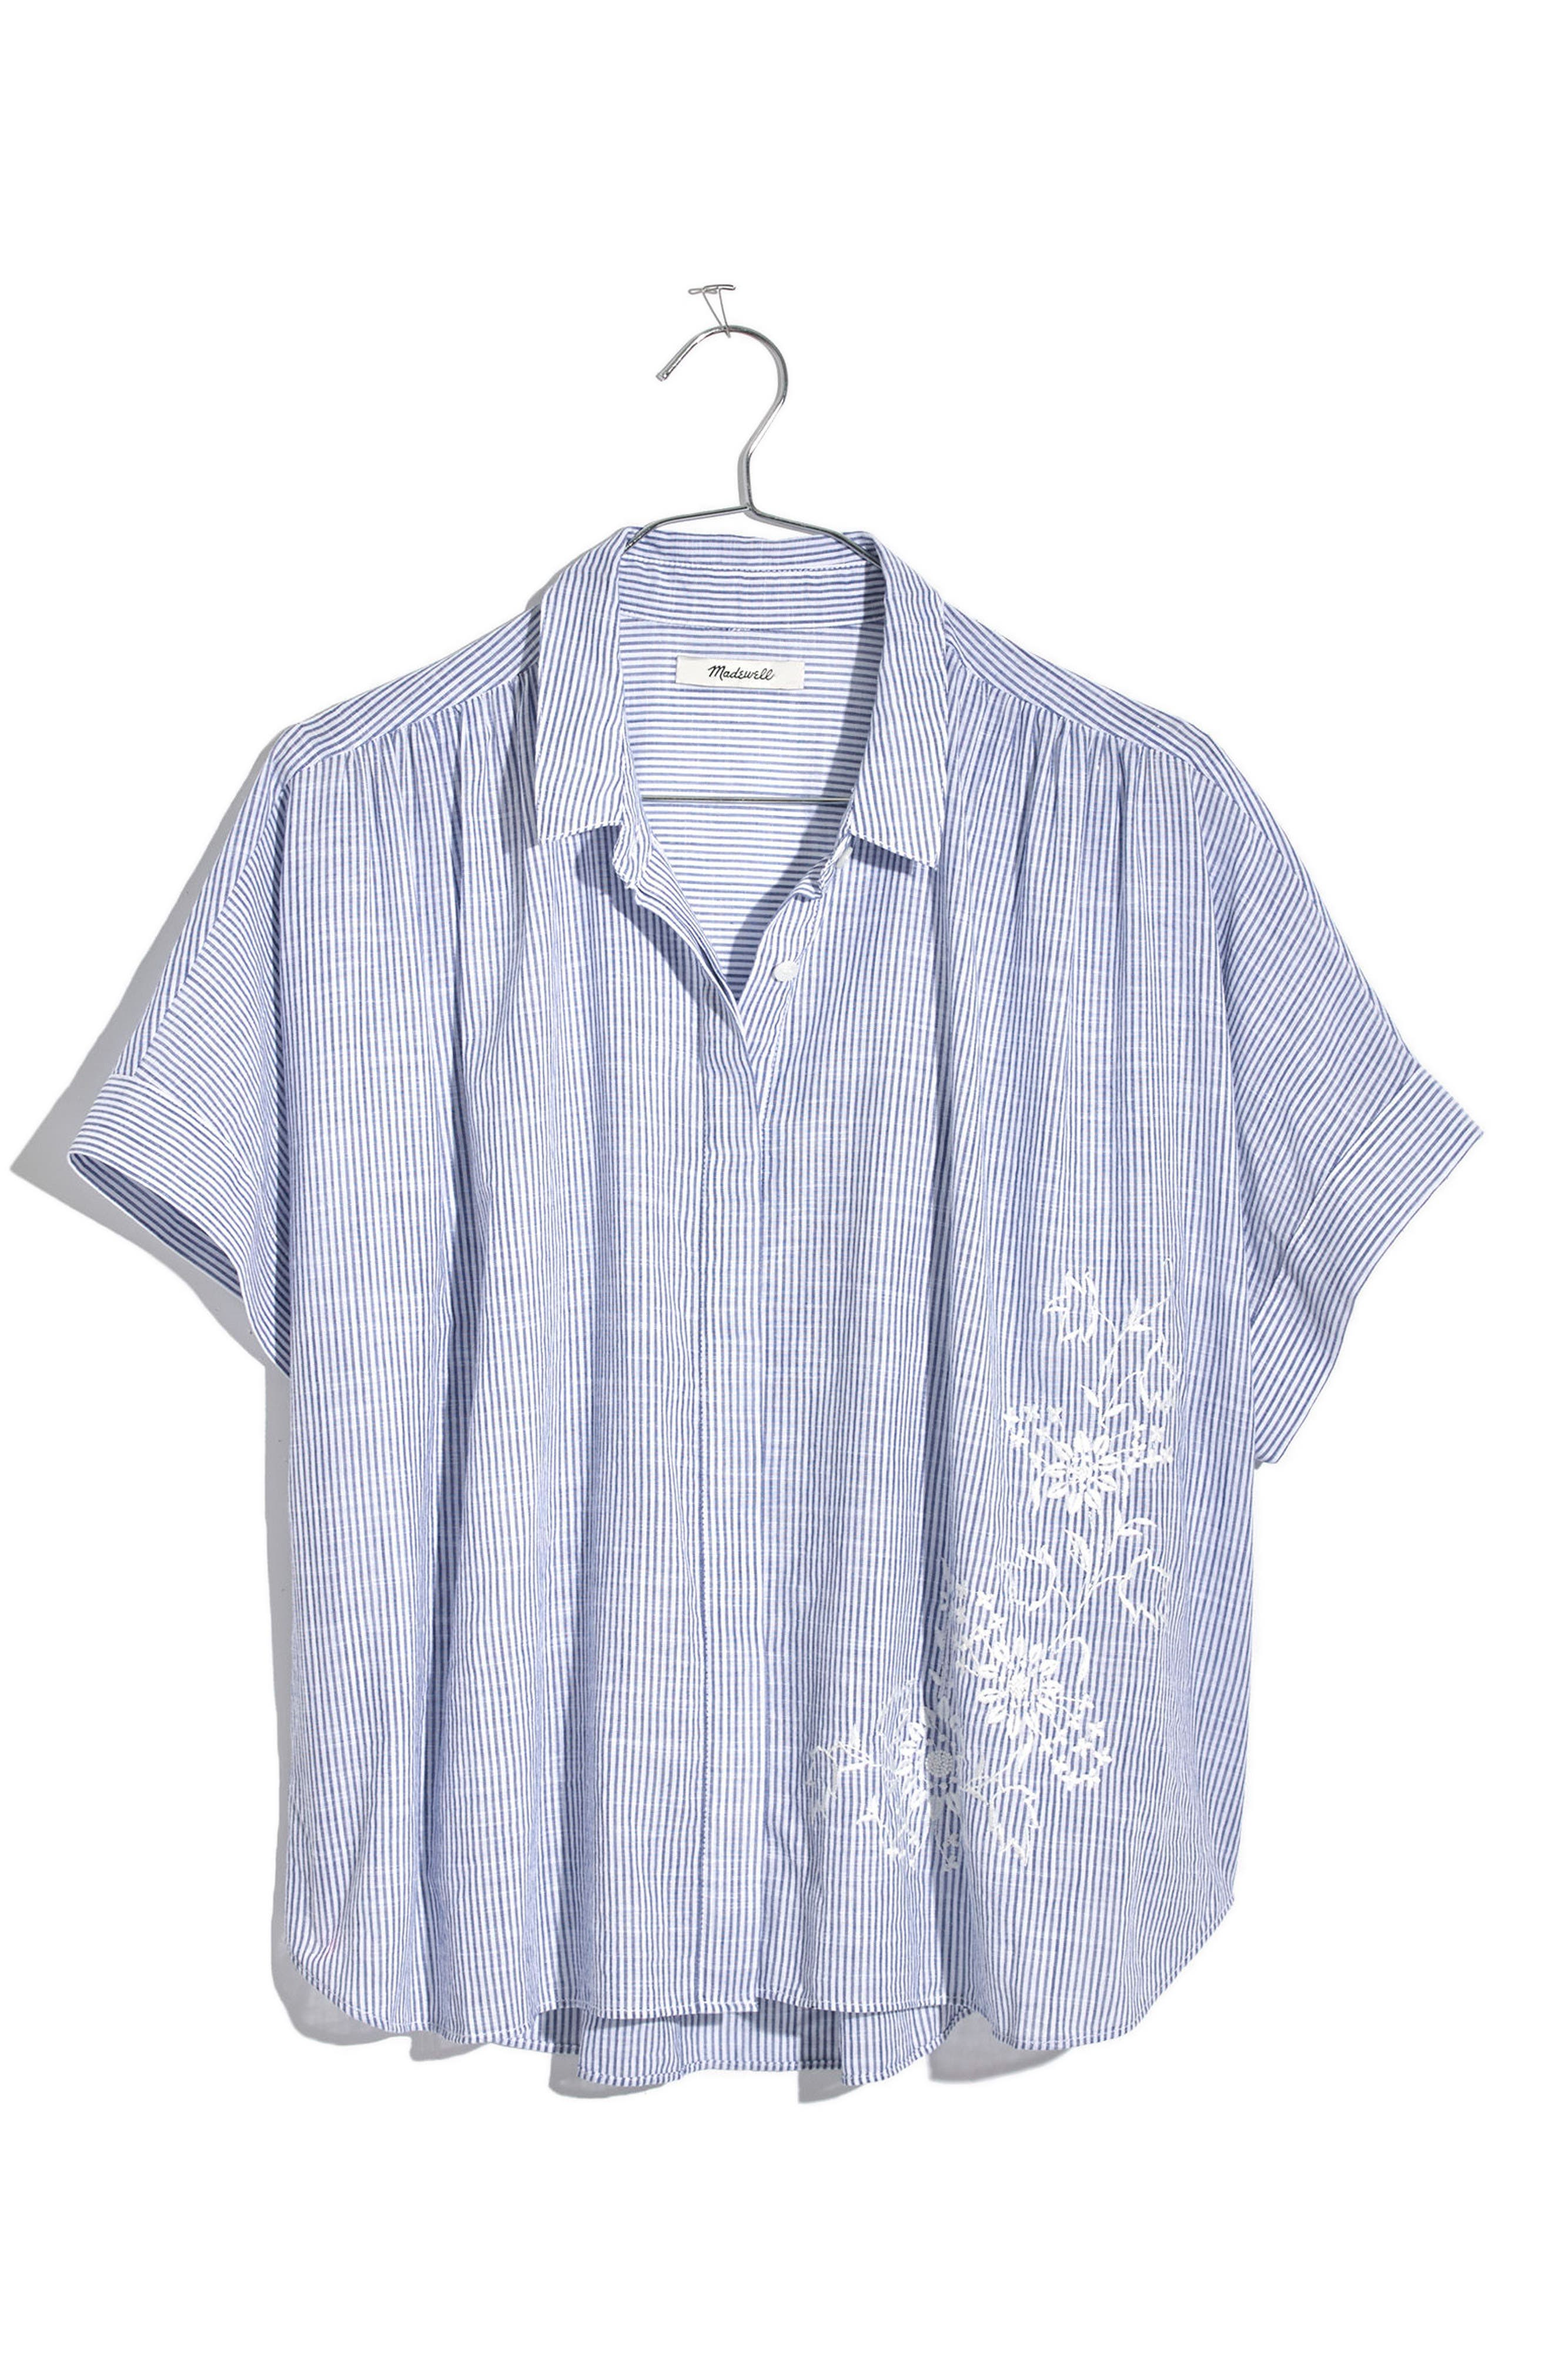 MADEWELL,                             Embroidered Hilltop Shirt,                             Alternate thumbnail 4, color,                             400